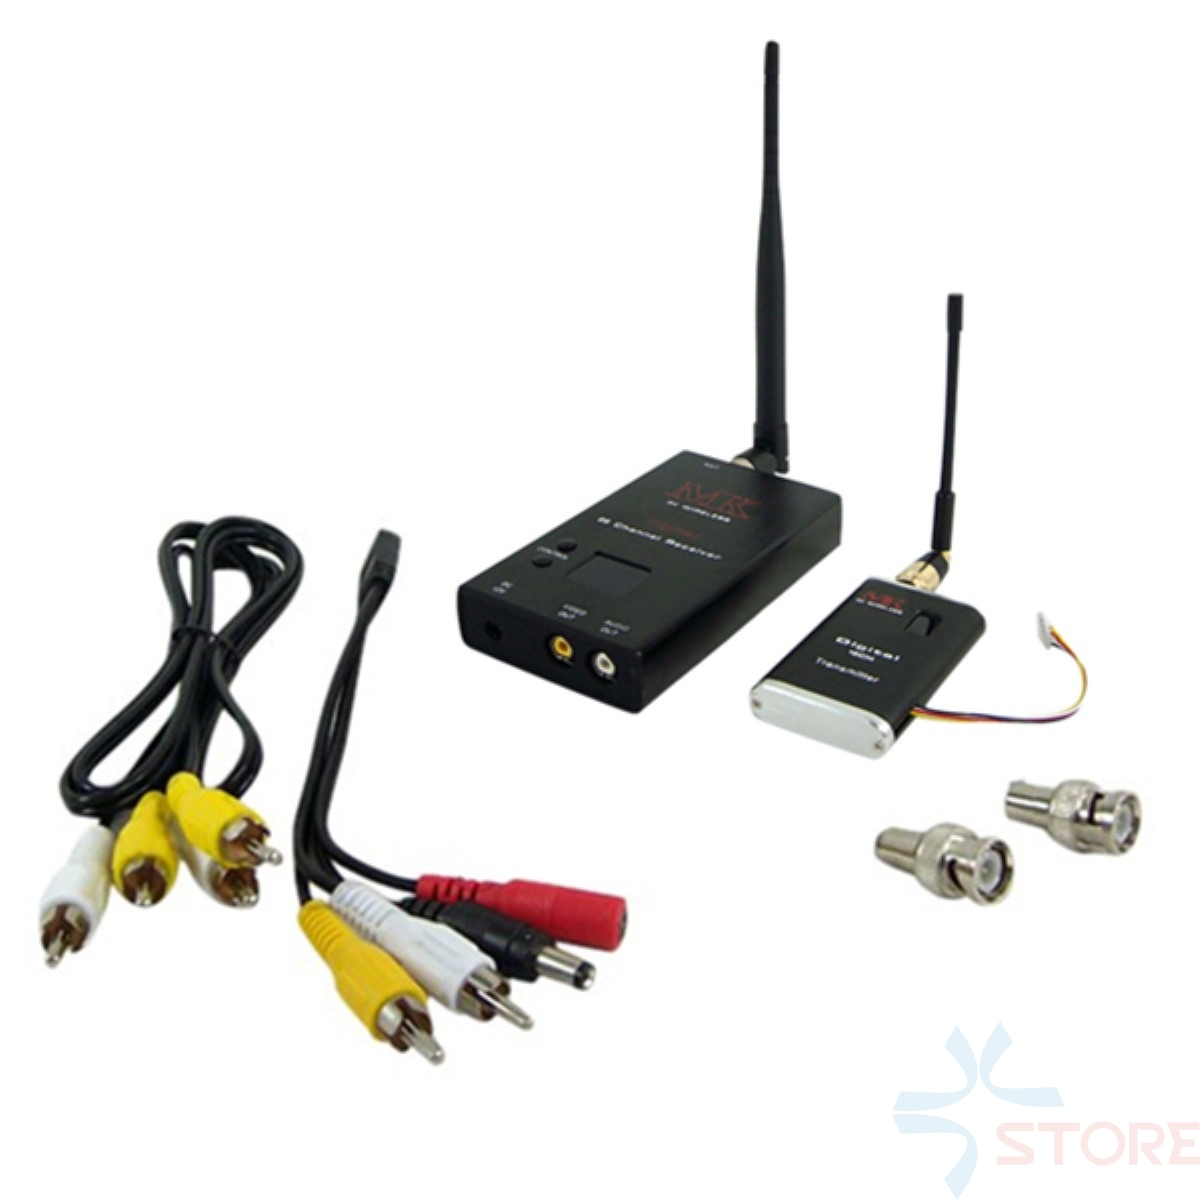 MK 1.2G Hz 15CH 2W 2000mW FPV 1-5km Distance Wireless Audio Video CCTV Transmitter Receiver For FPV PHOTOGRAPHY free shipping 5 8g 2000mw 2w tx2000 8ch remote wireless audio video av transmitter receiver rc5808 tx rx kit for fpv multicopter